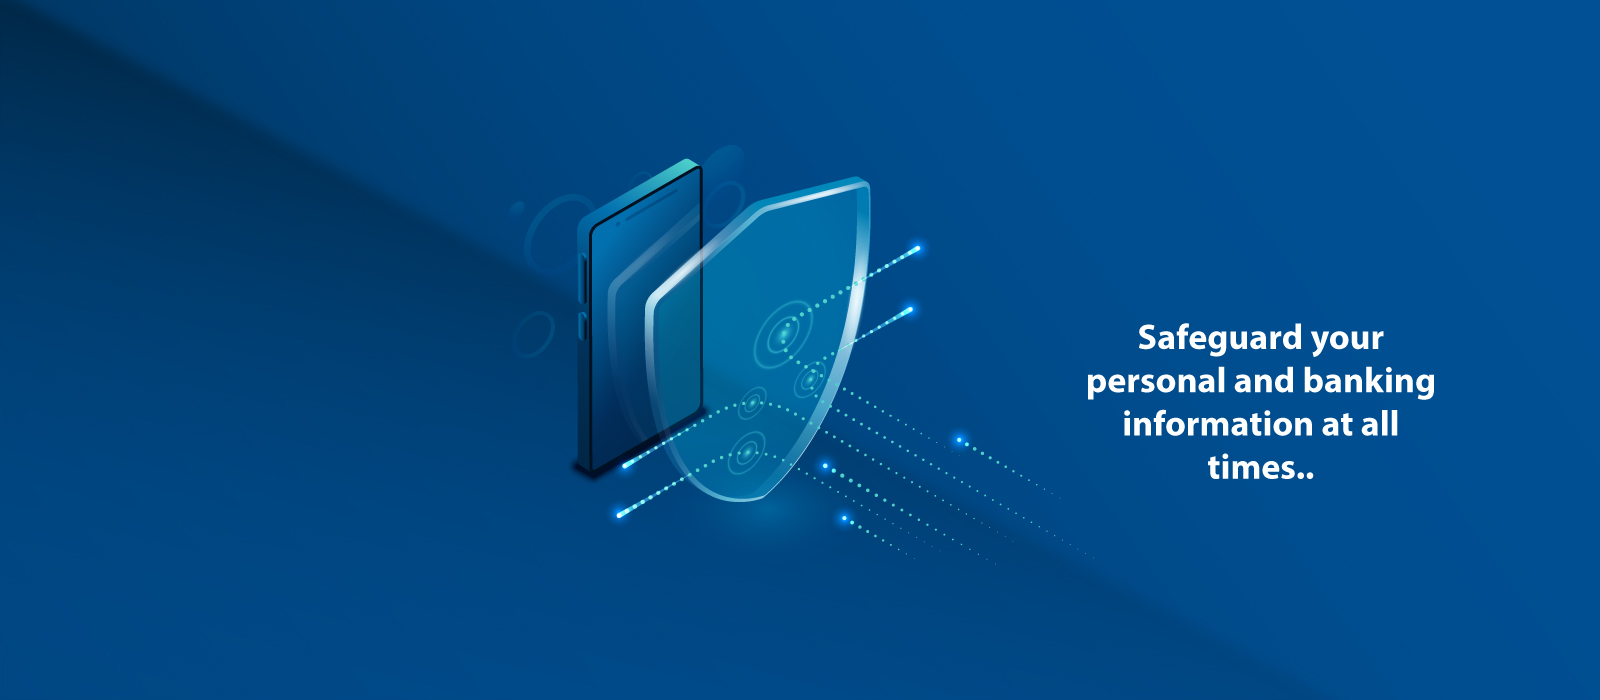 Info-Security--Website-banners-2-Amend2-ENG